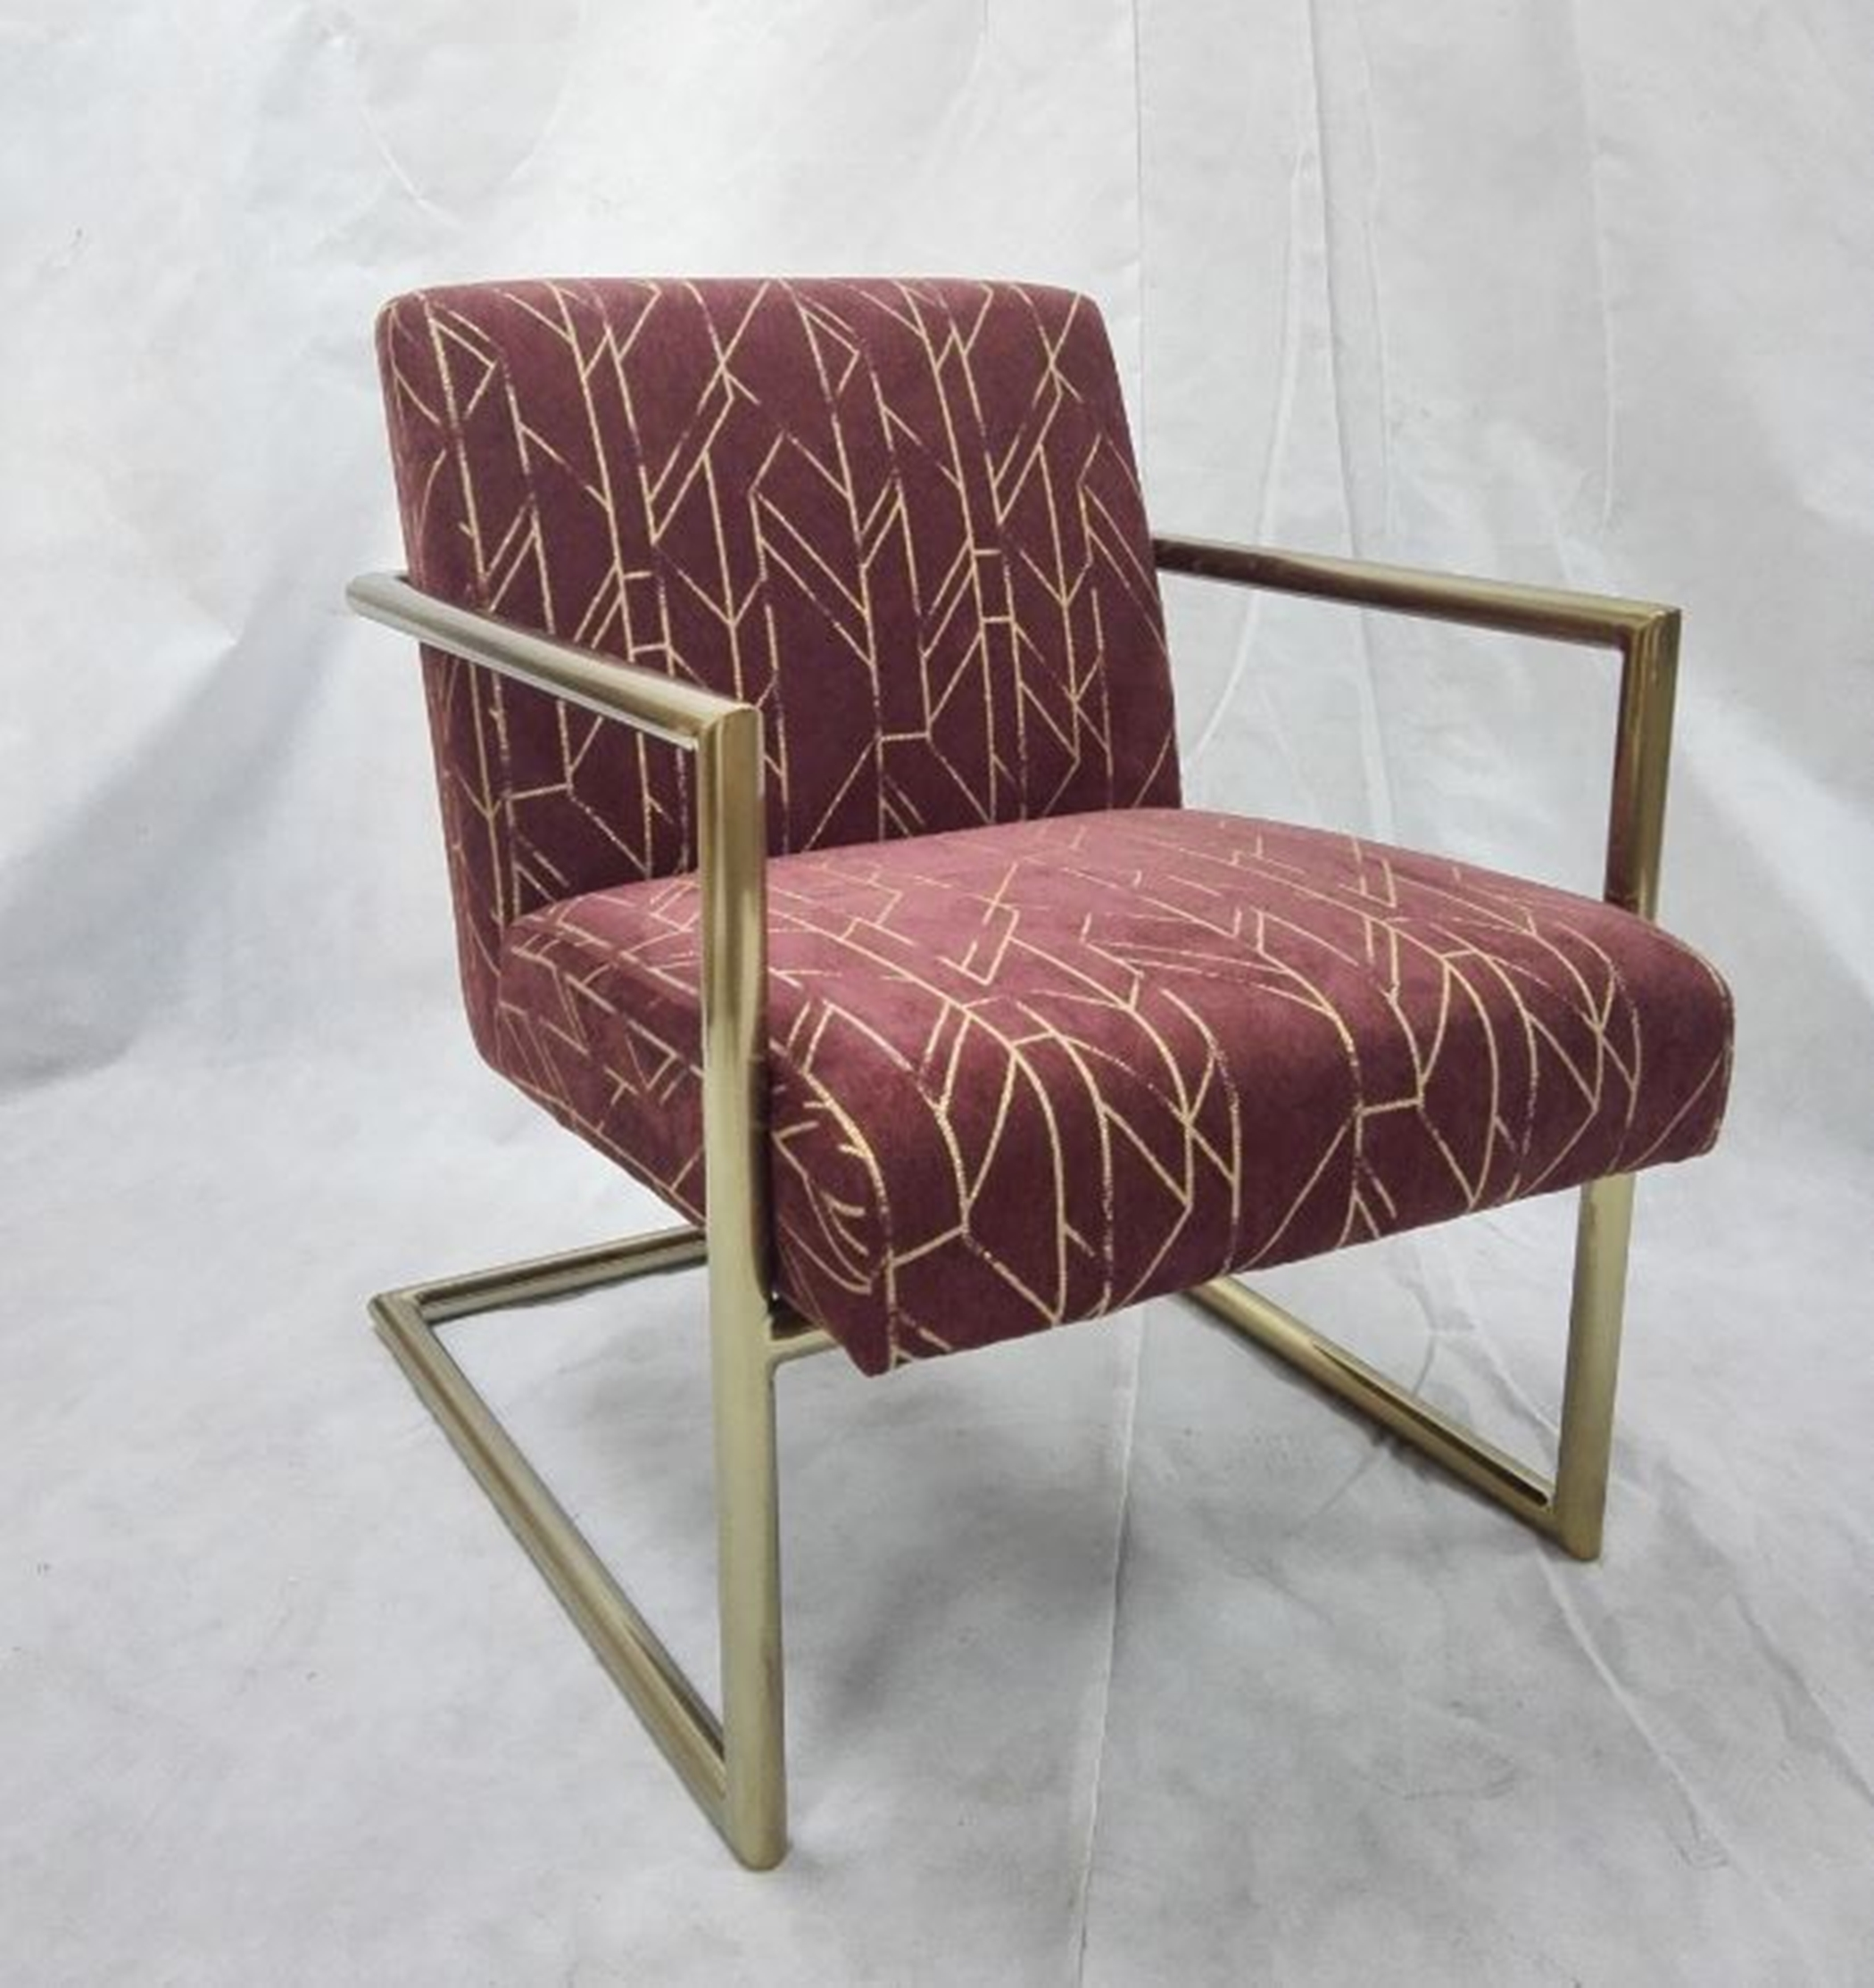 905405 - Accent Chair